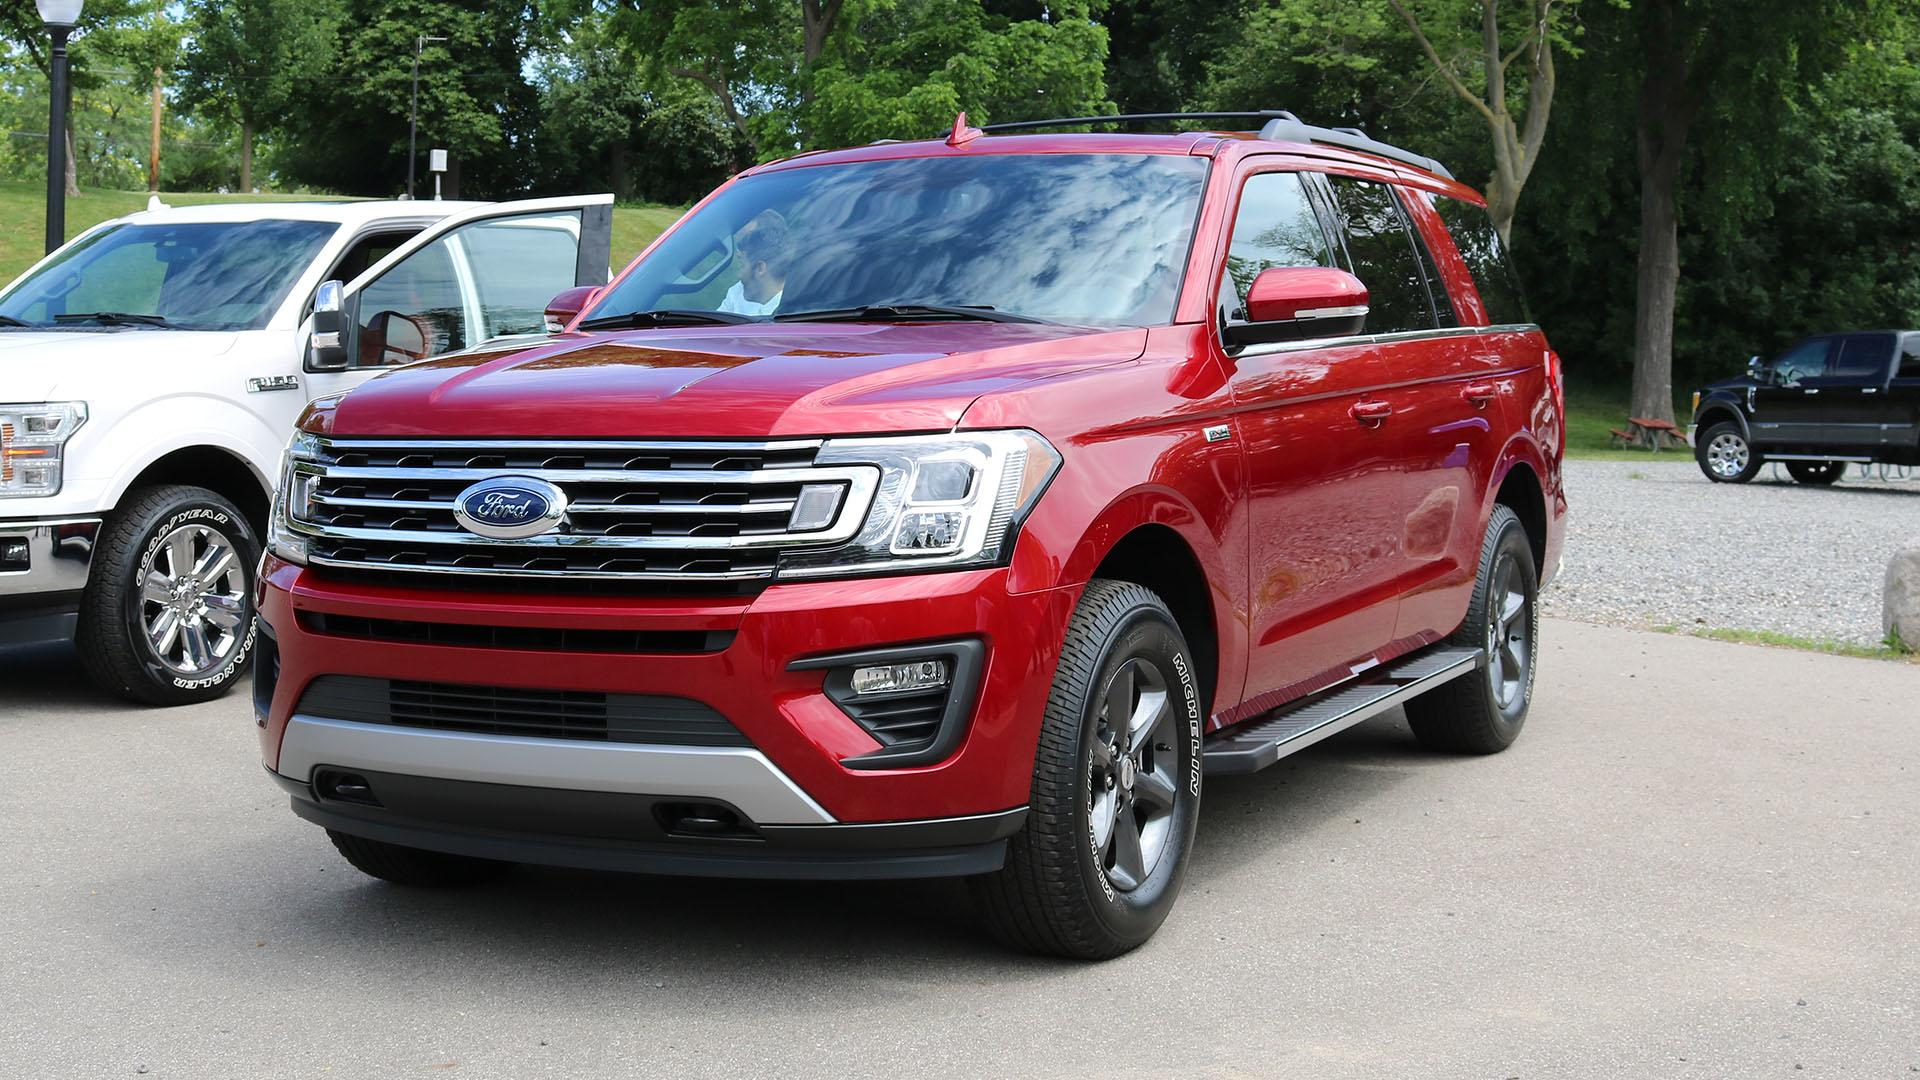 2018 Ford Expedition FX4 Lets Your Big SUV Go OffRoad